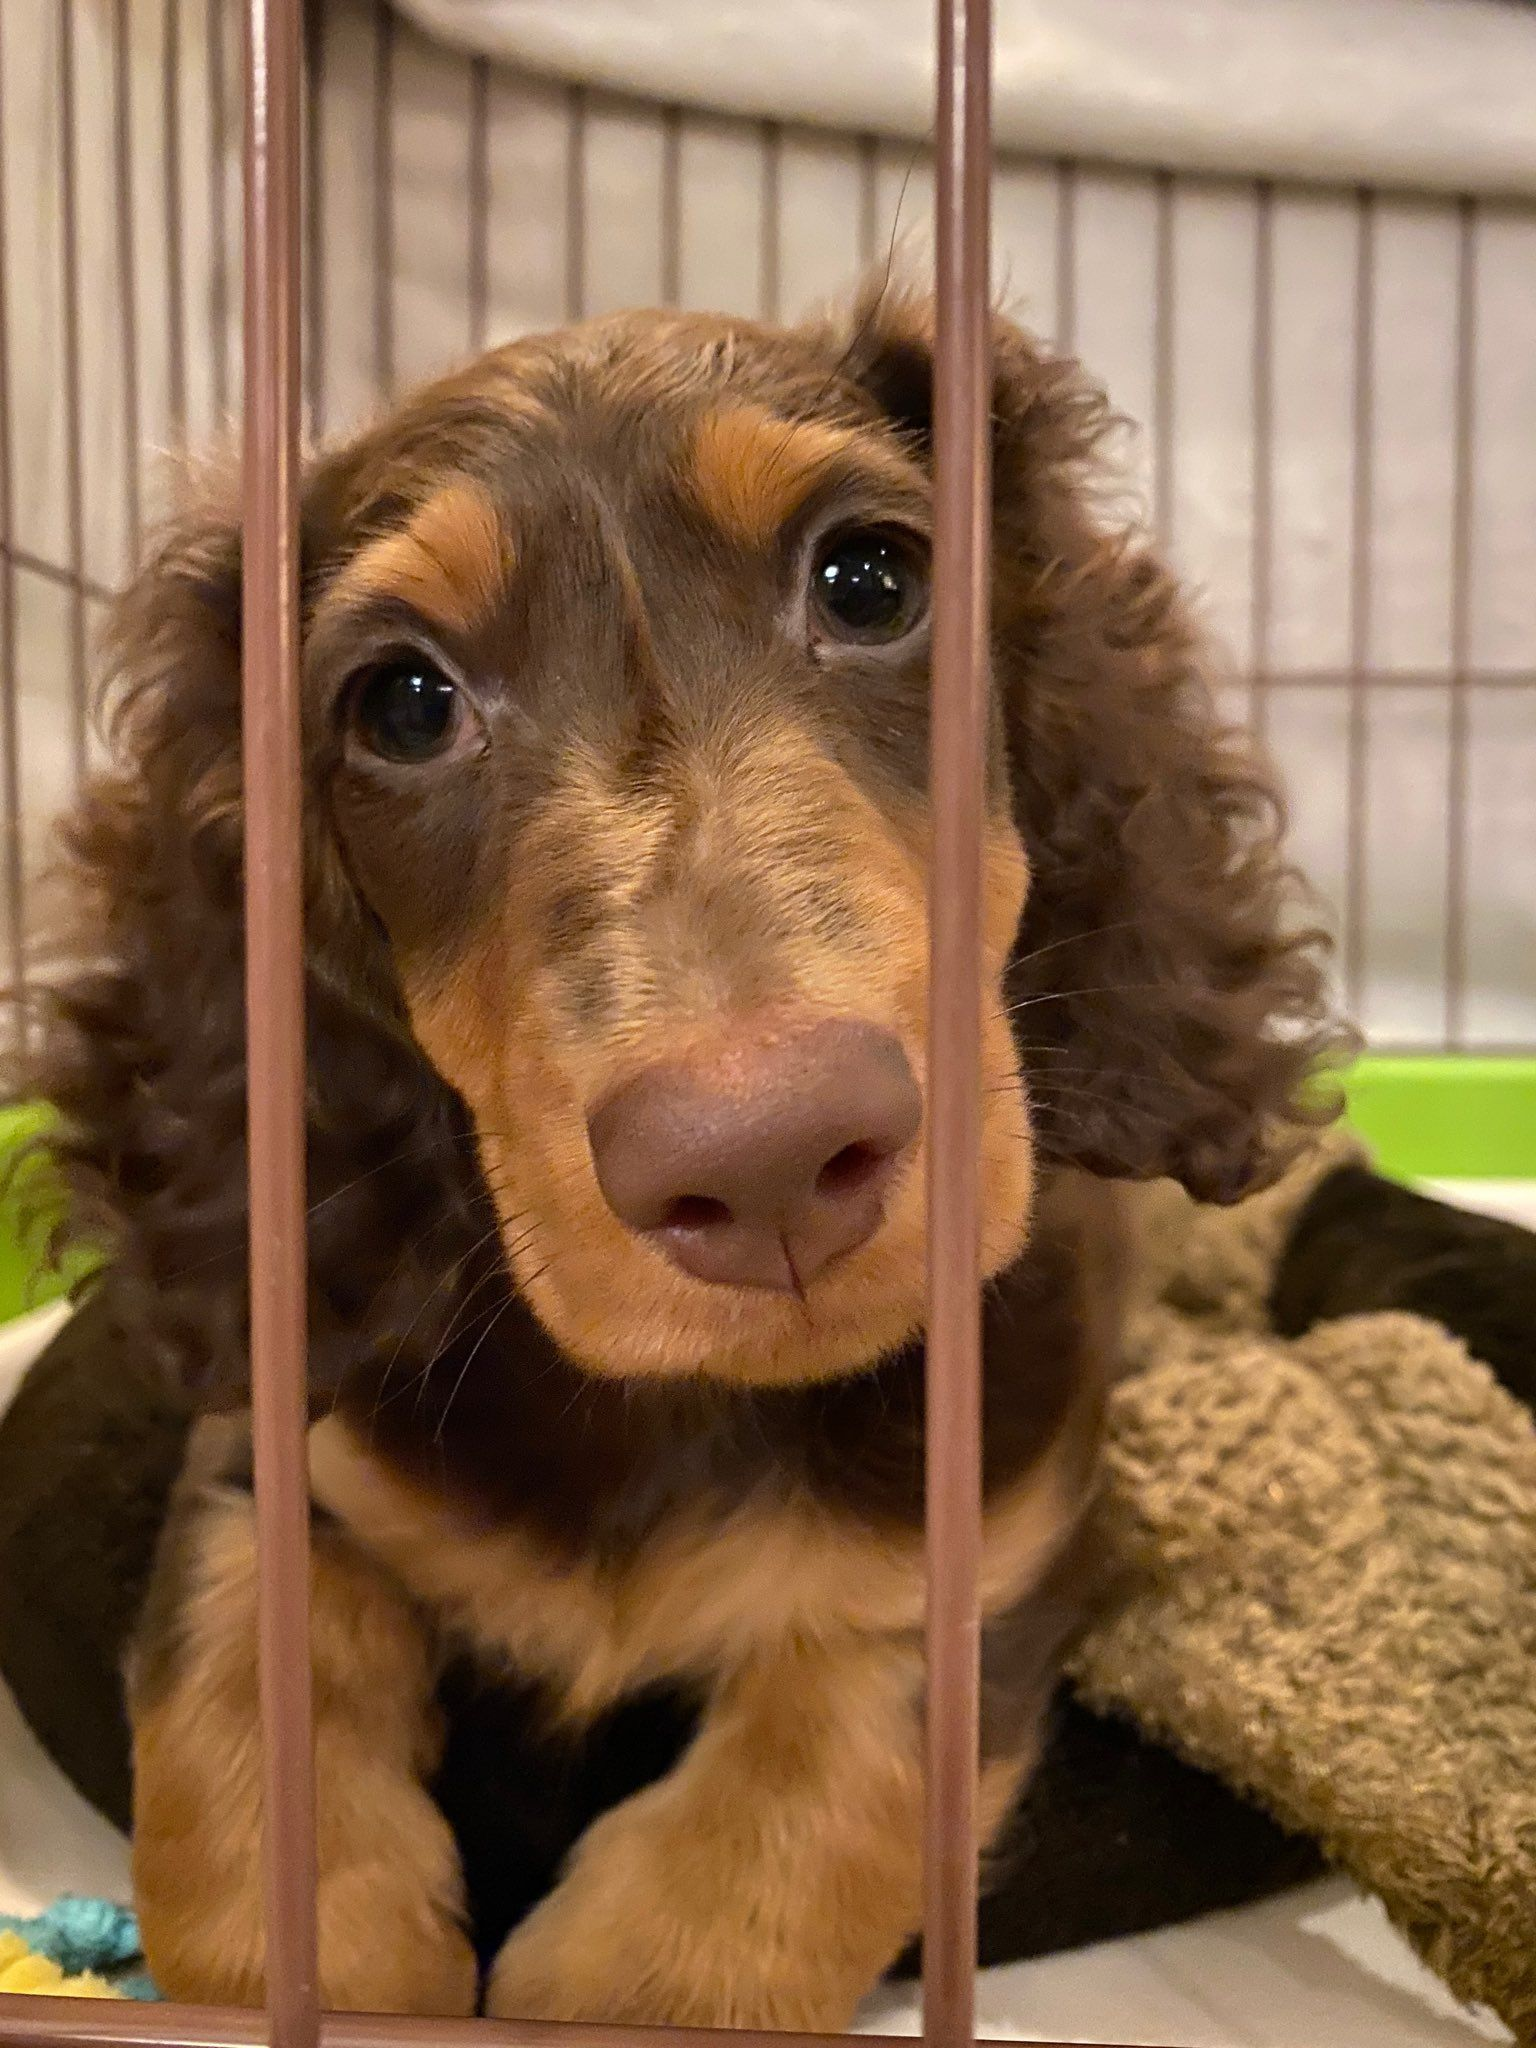 How To Care For A New Dachshund Puppy Taking Care Of Puppies And